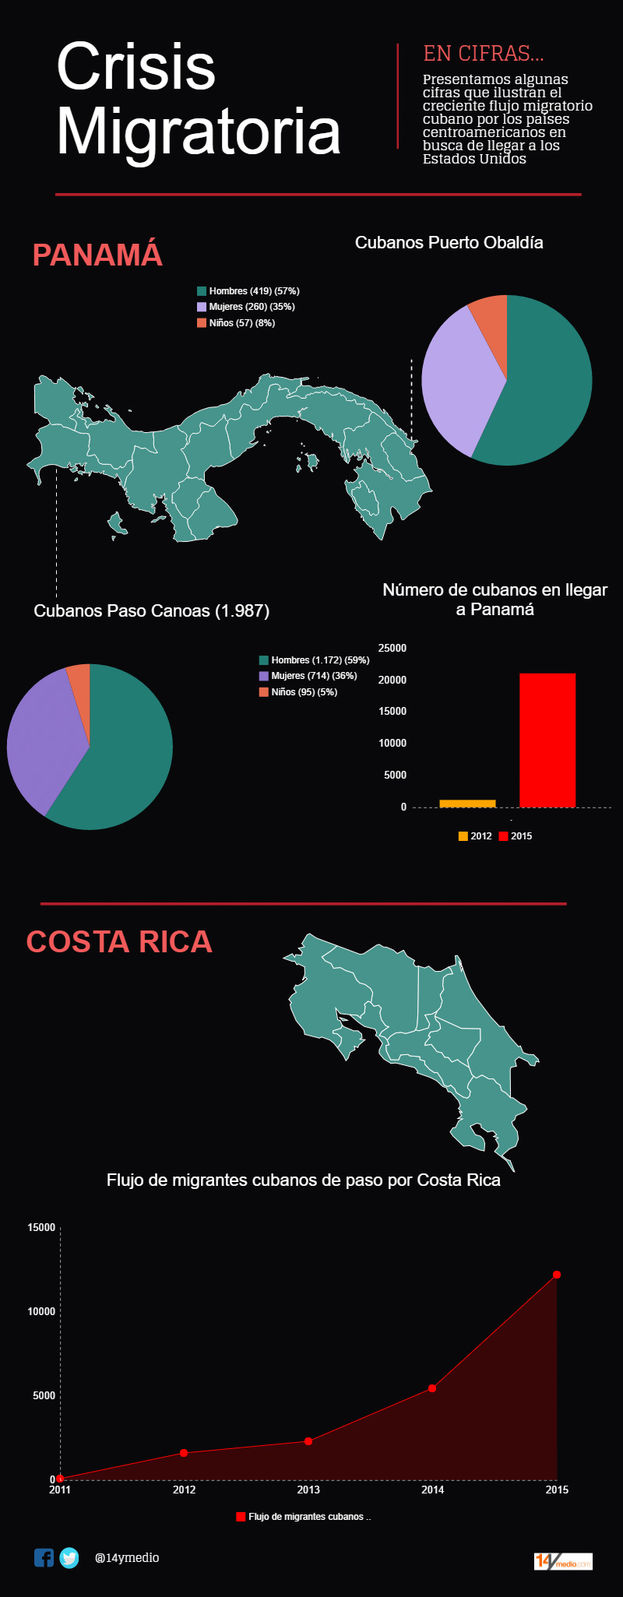 Cuban migration crisis in numbers.